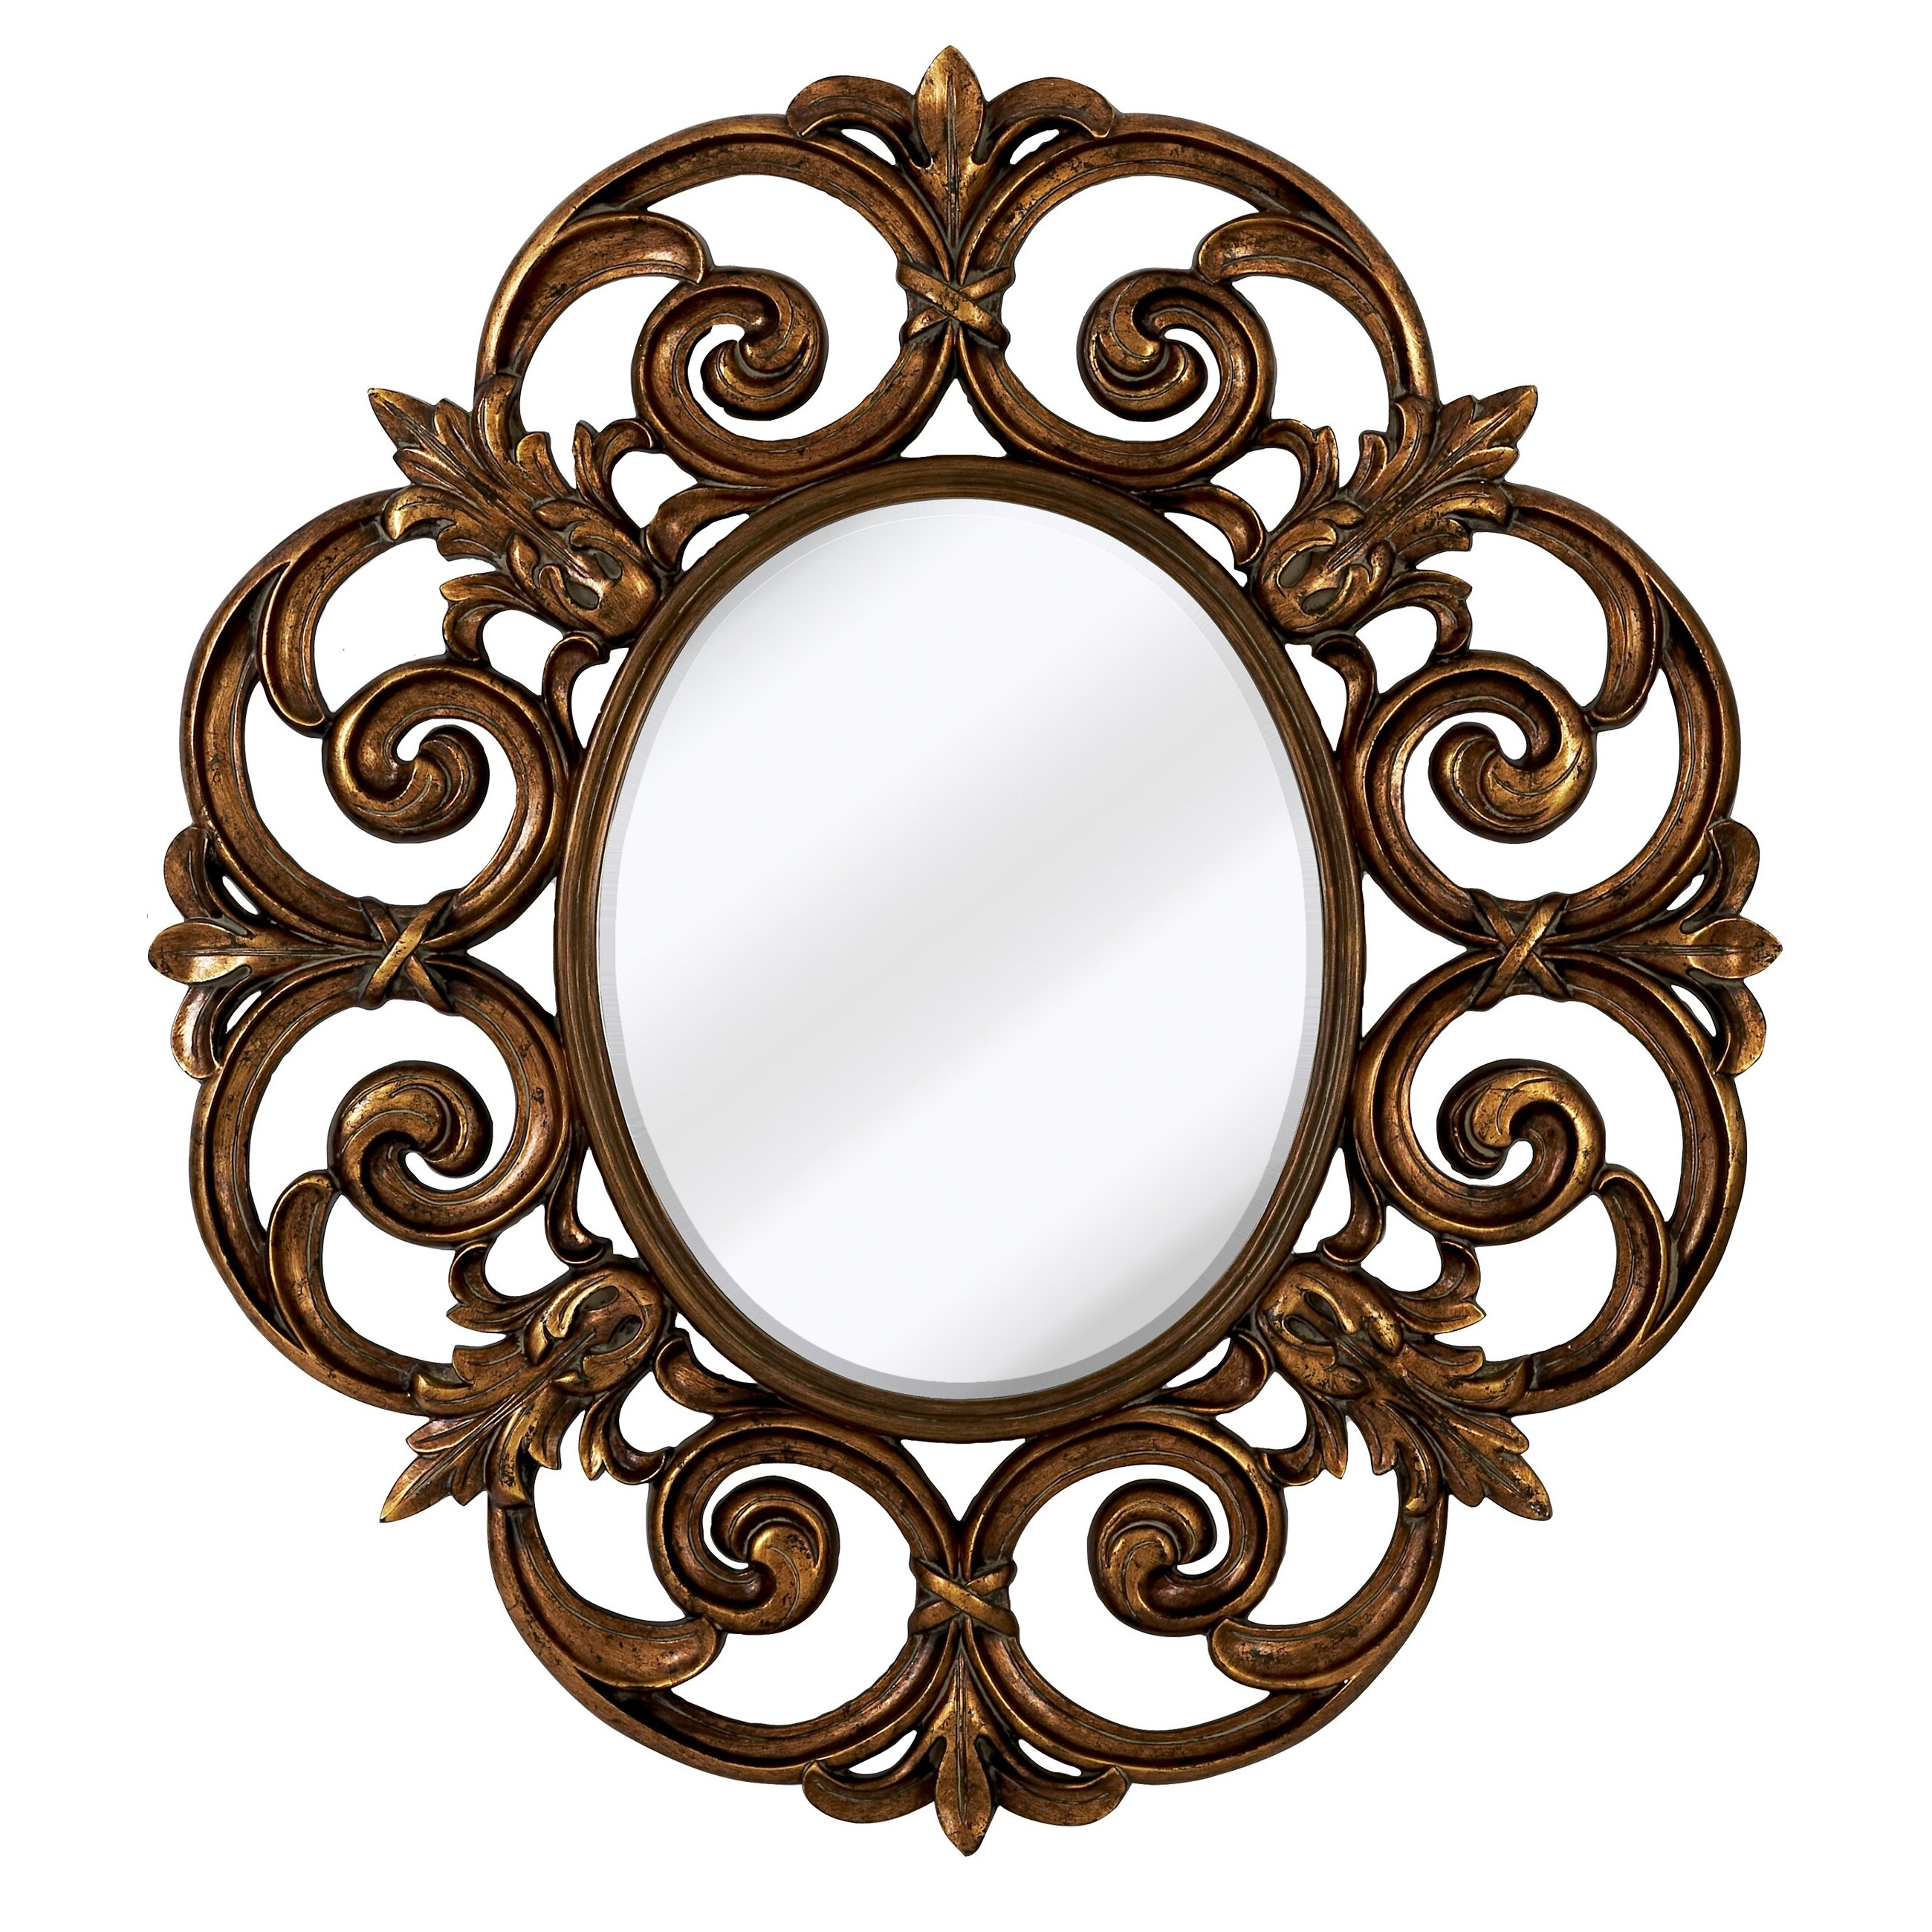 Round Shaped Wall Decor : Majestic mirror large traditional round decorative oval